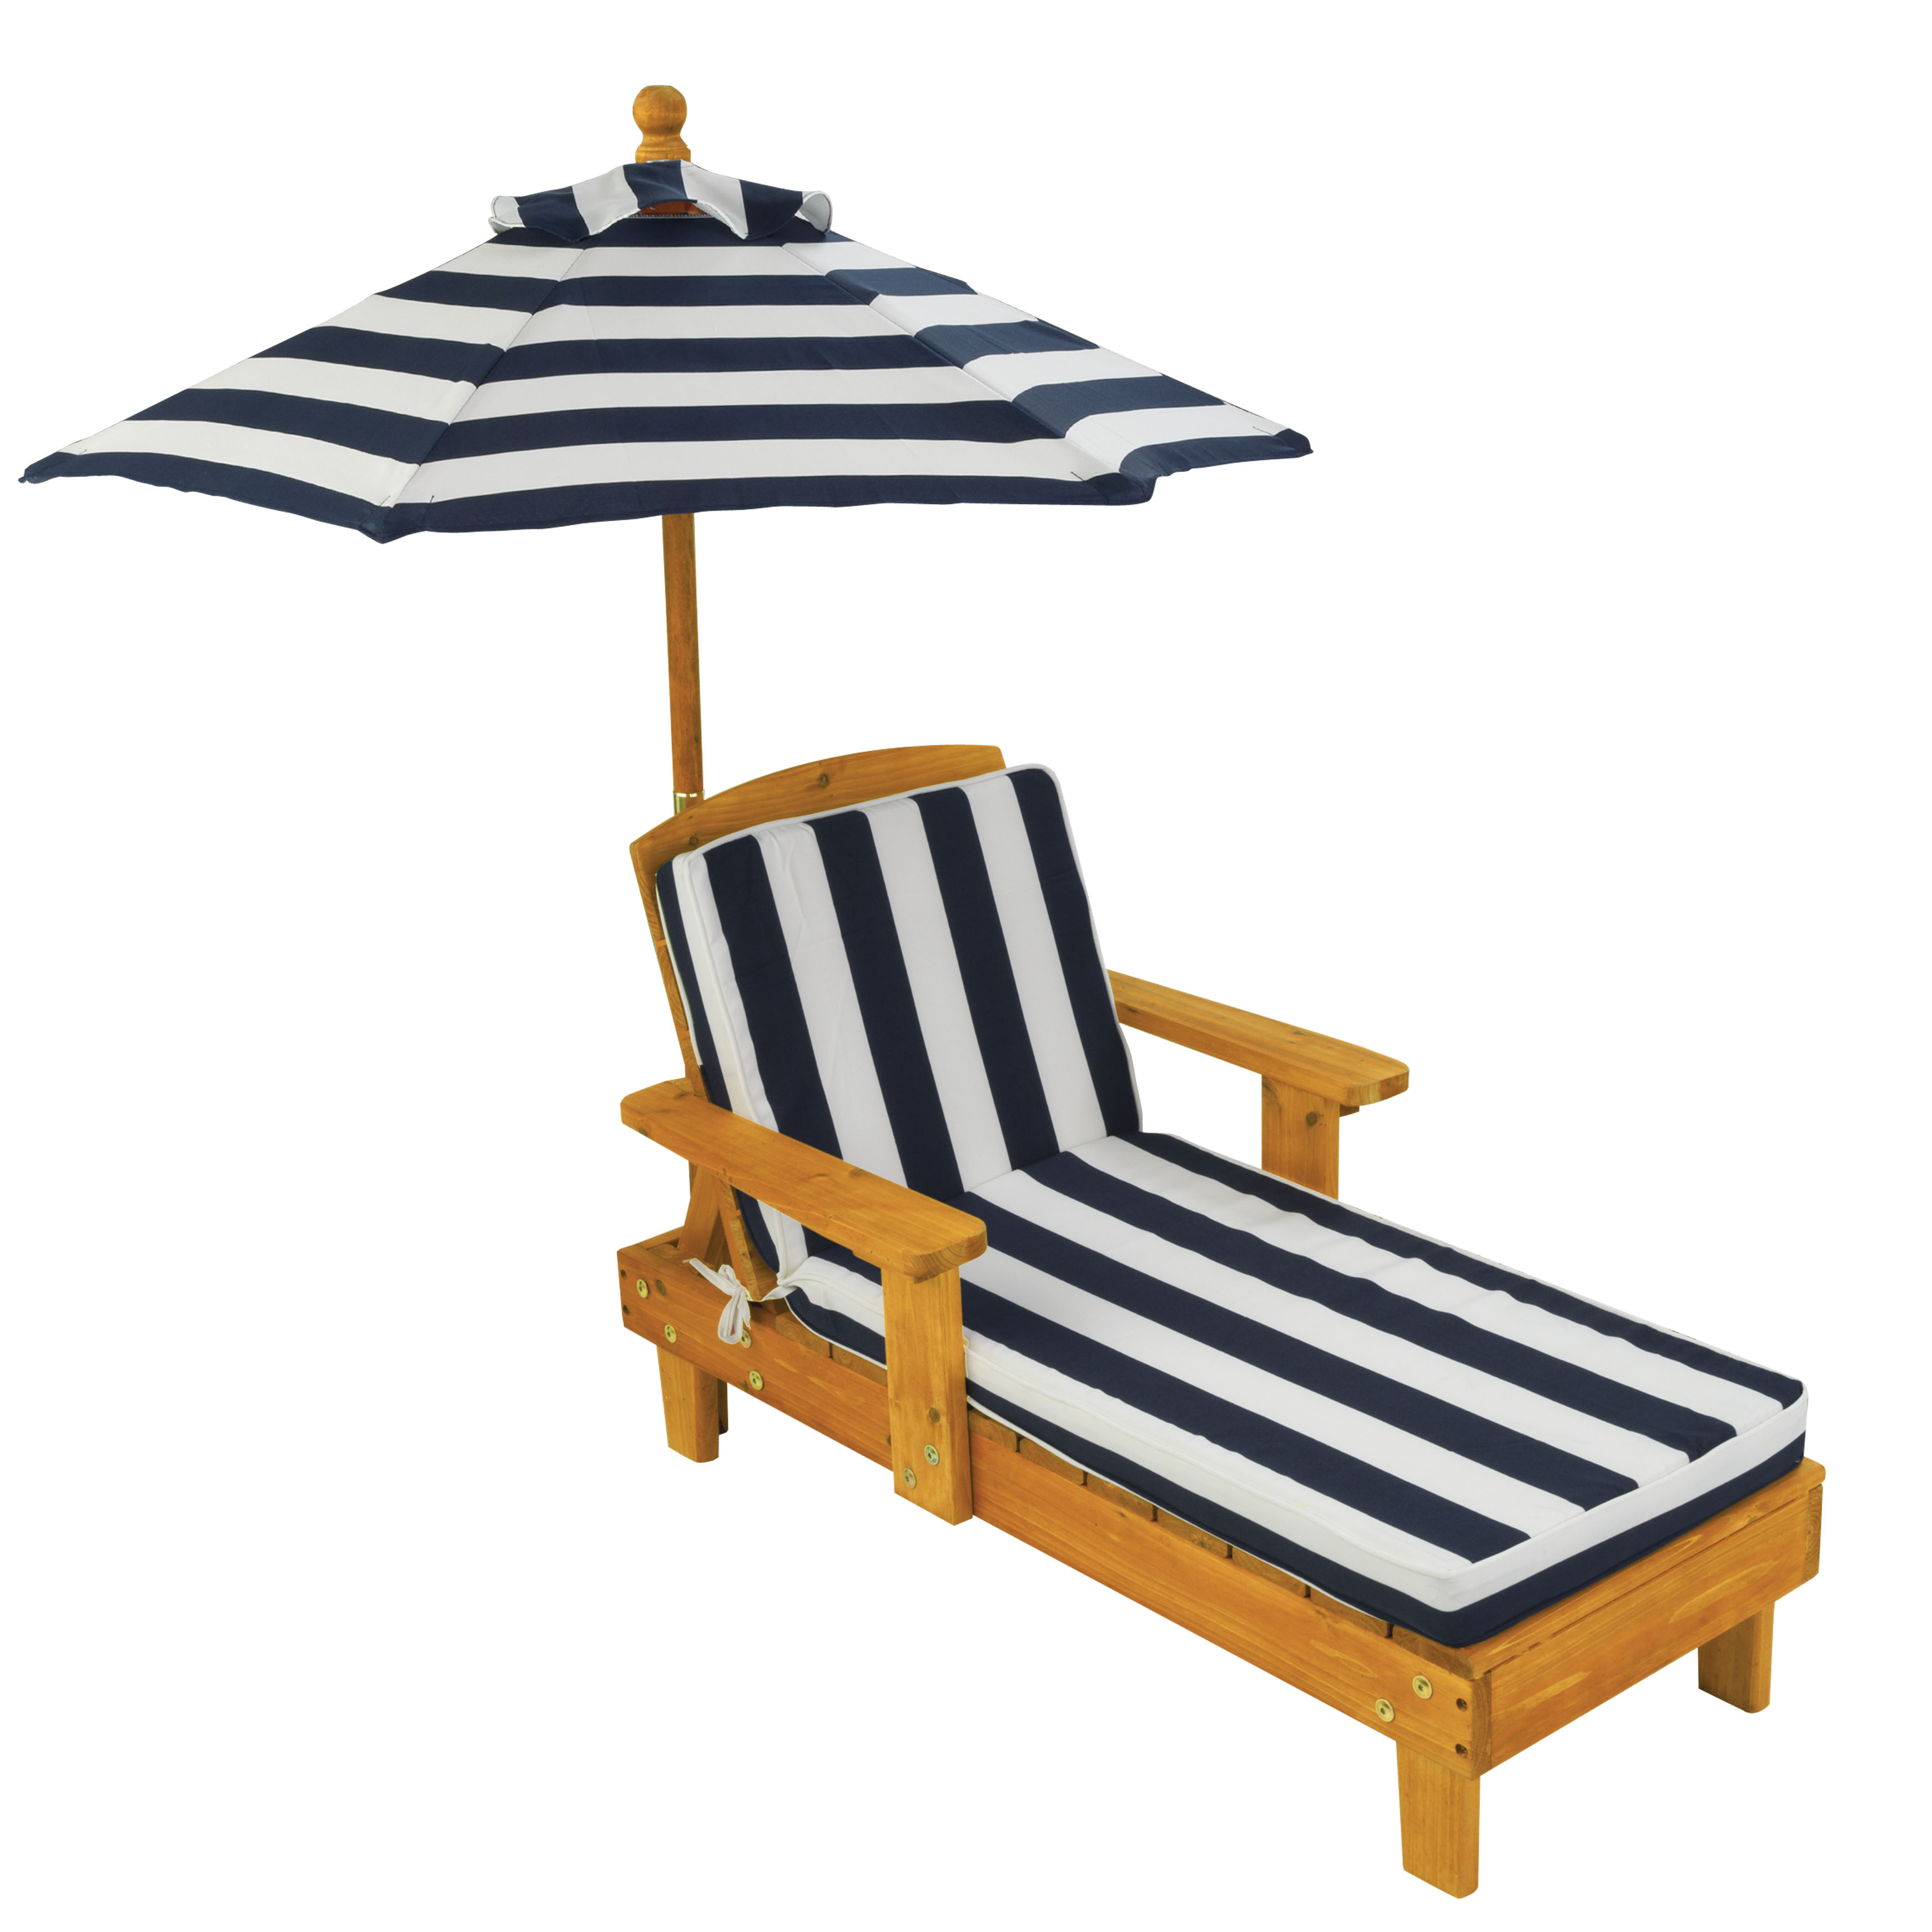 KidKraft Outdoor Chaise Lounge Children's Chair with Umbrella and Cushion, Navy and White Striped Fabric